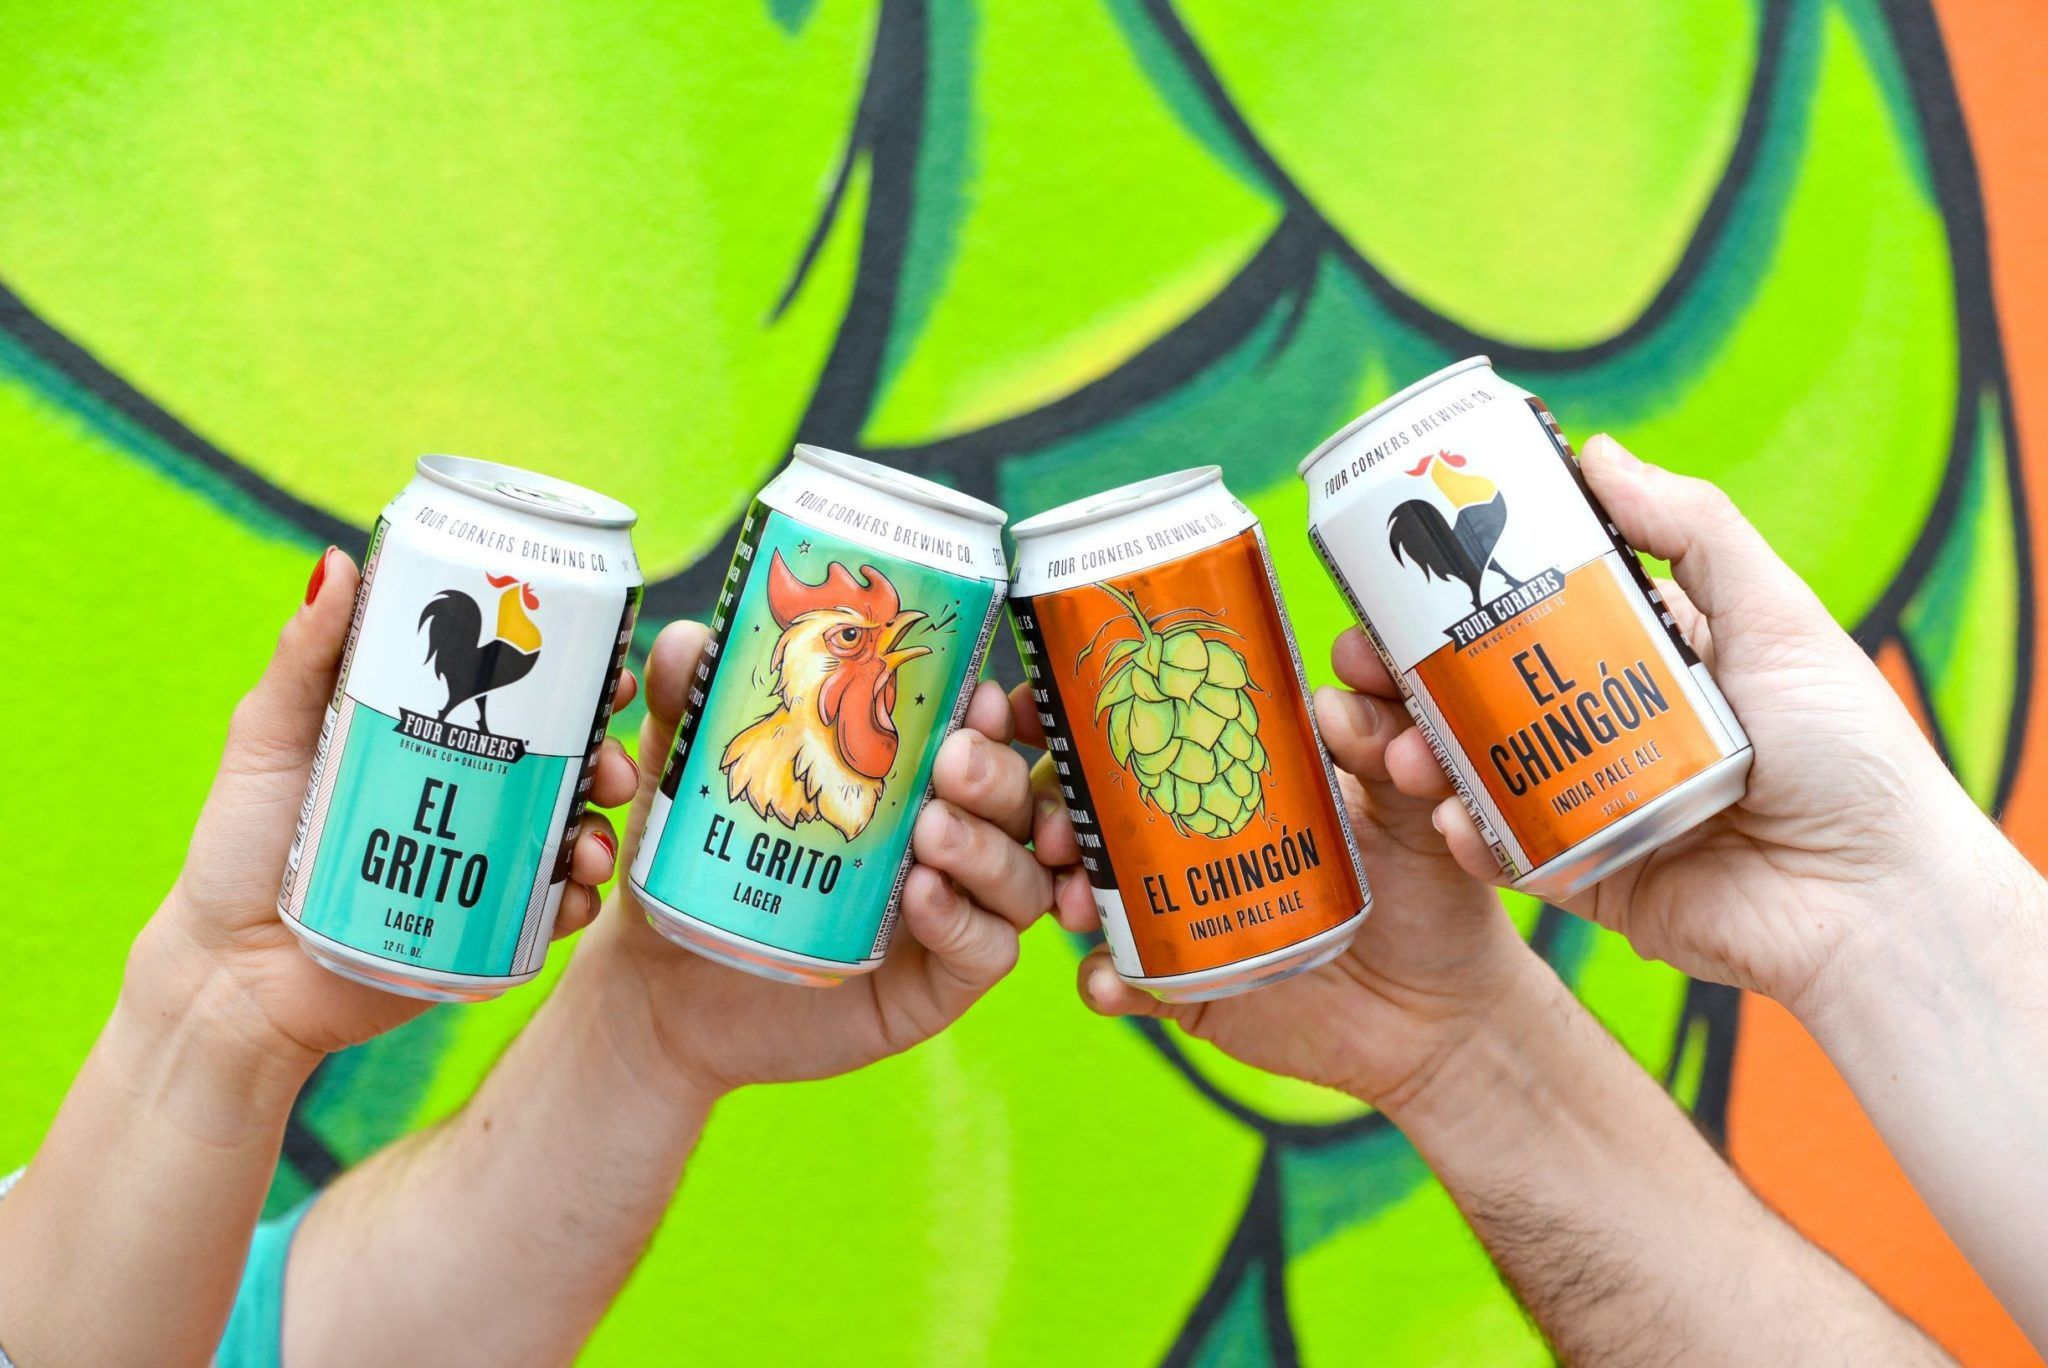 Four Corners Brewing Co. expands distribution to Southern California